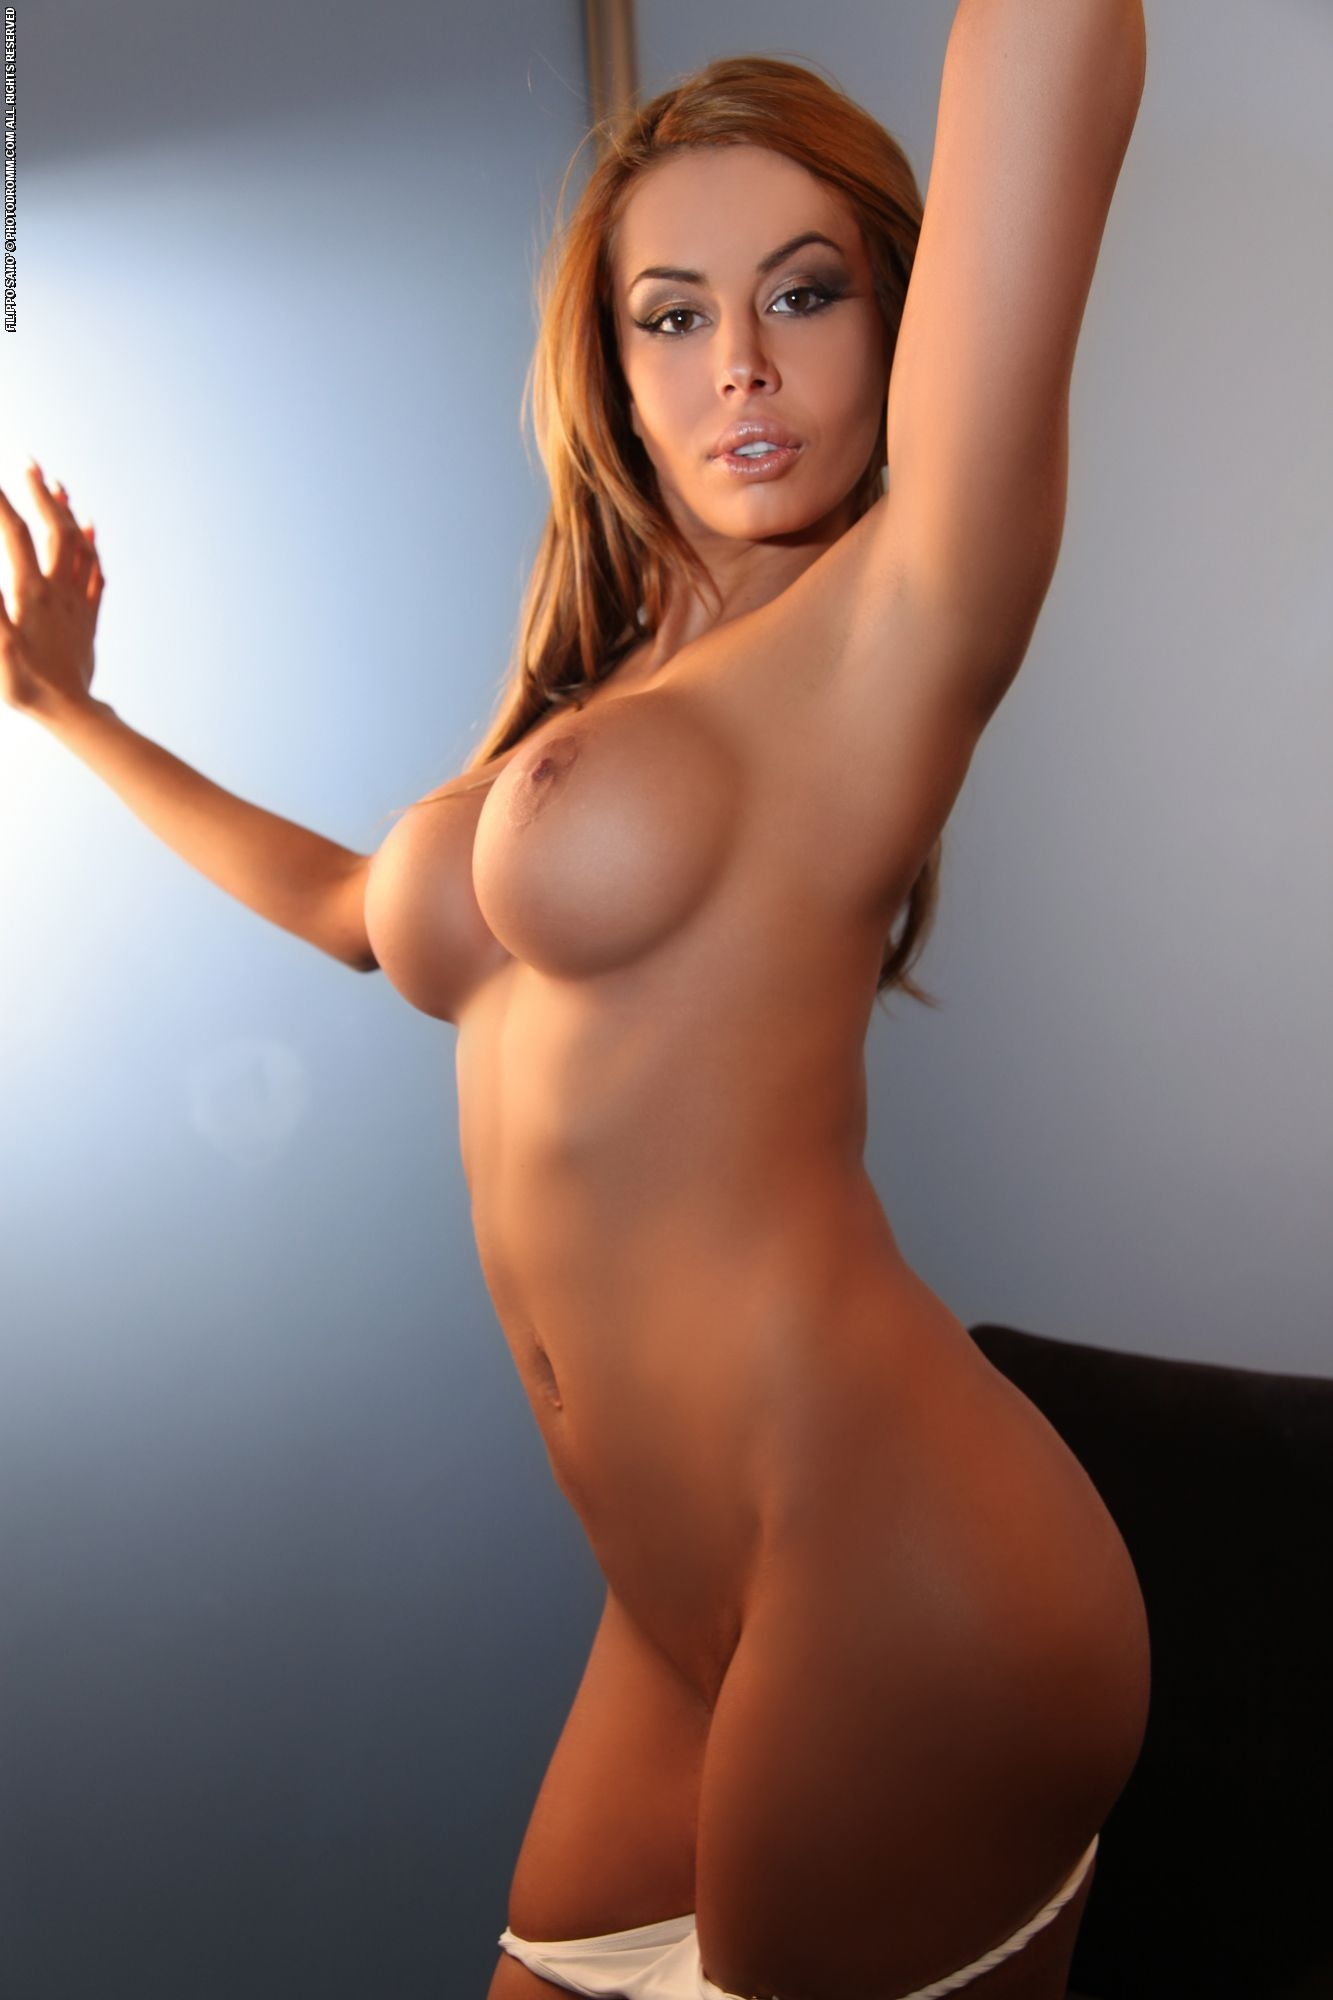 hot teacher naked pictures